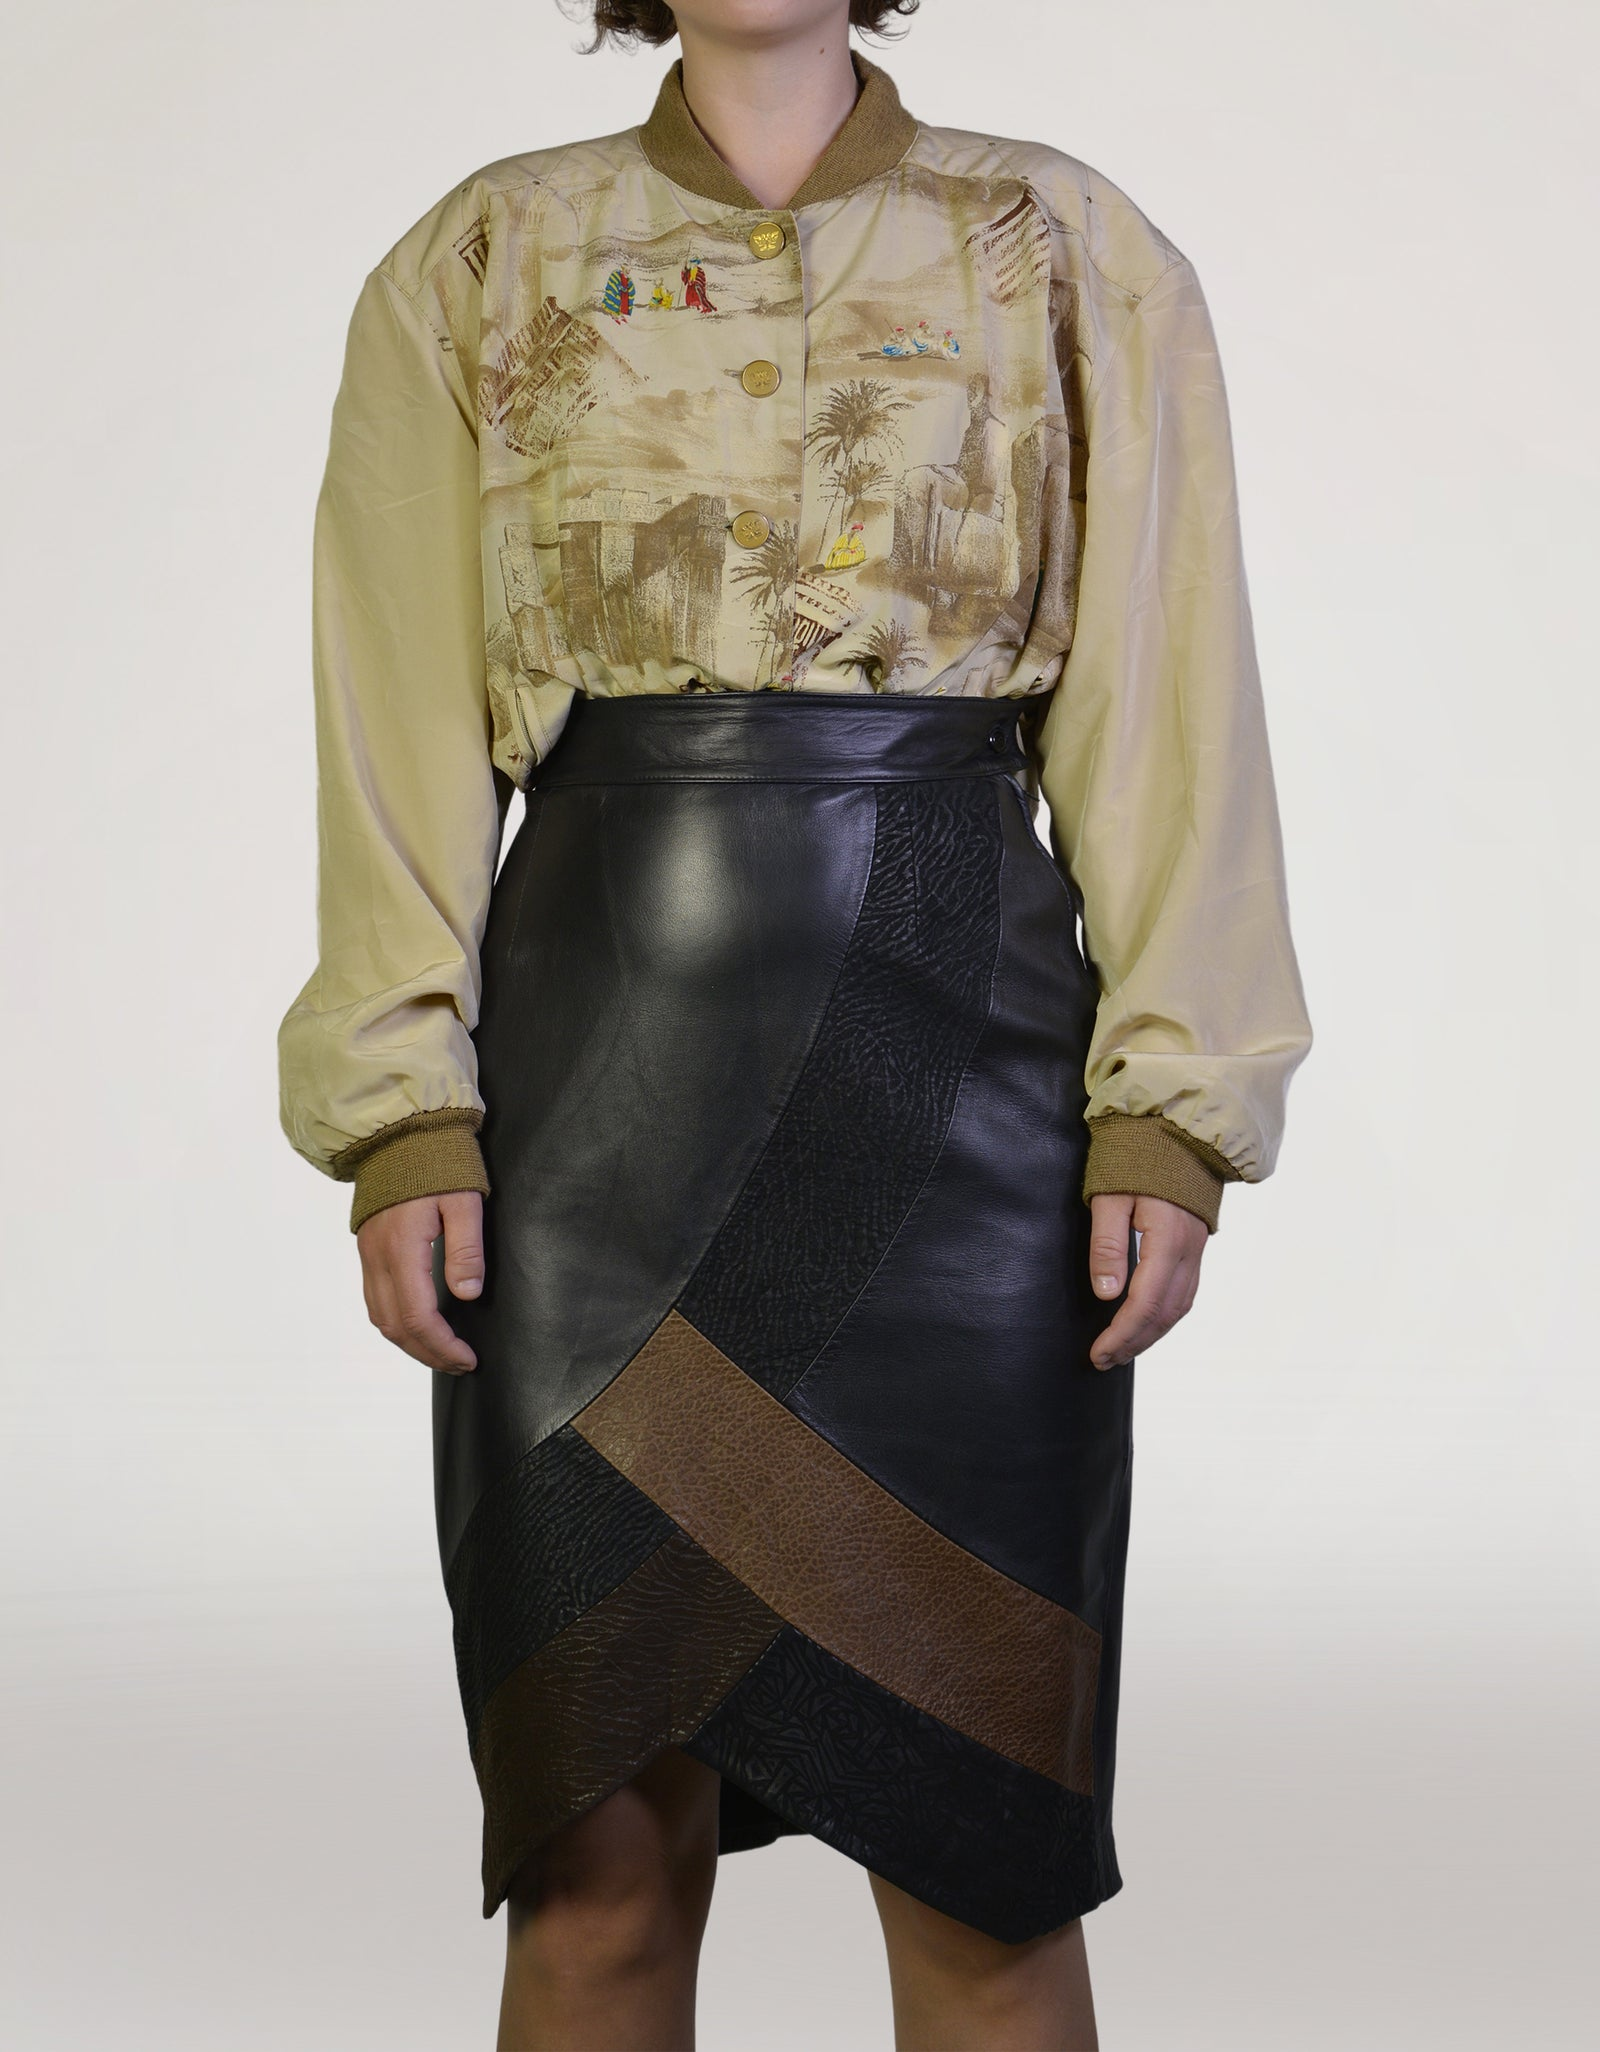 Leather skirt - PICKNWEIGHT - VINTAGE KILO STORE